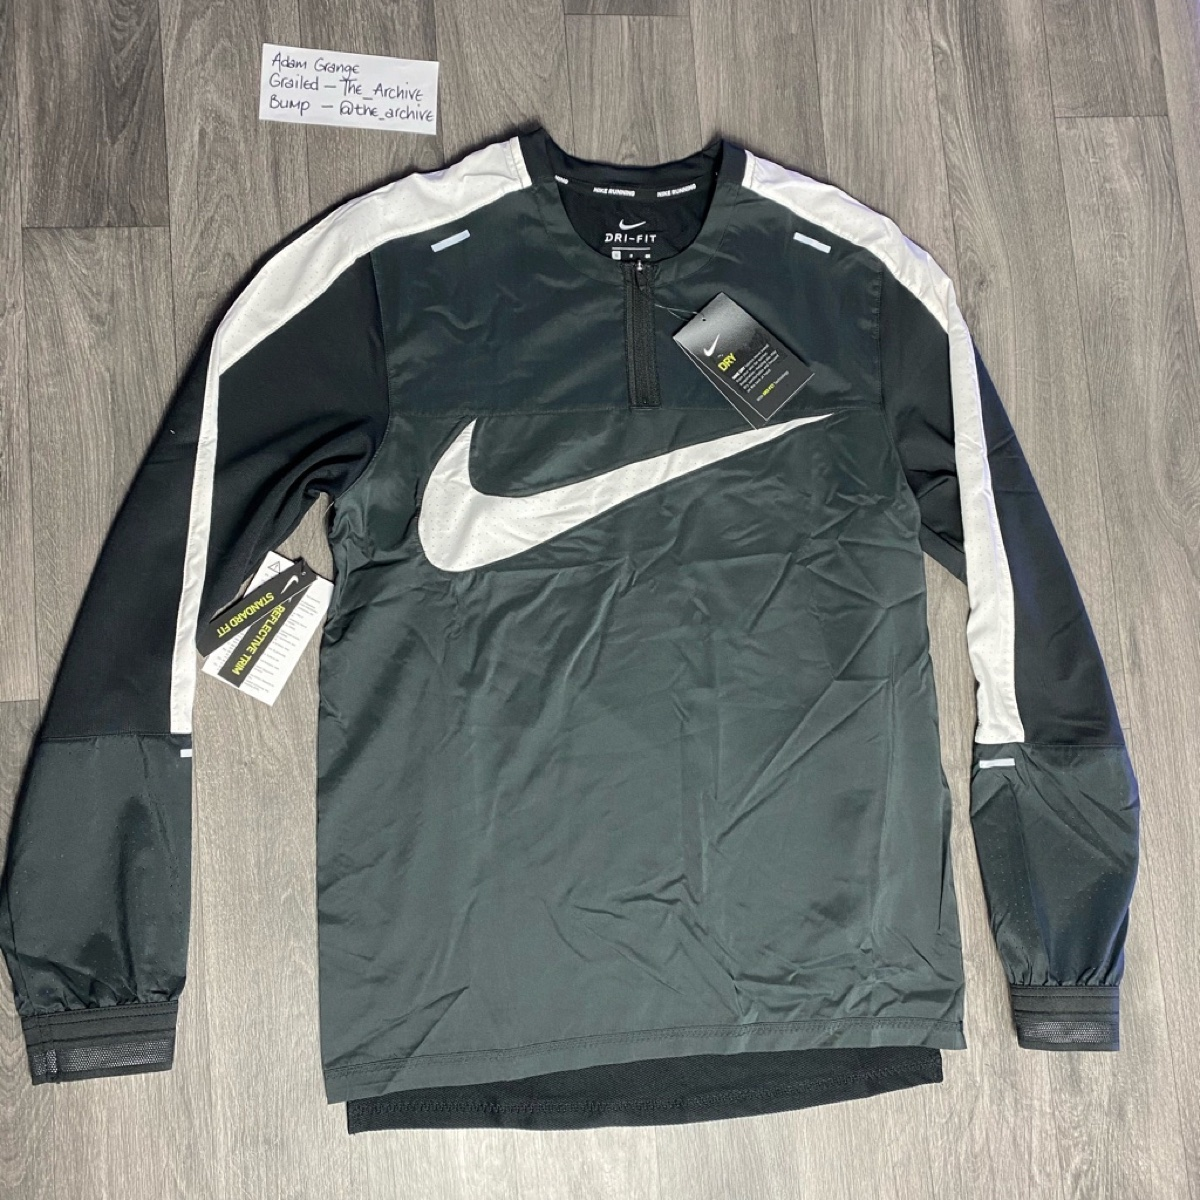 Nike Dri Fit element wild run longsleeve